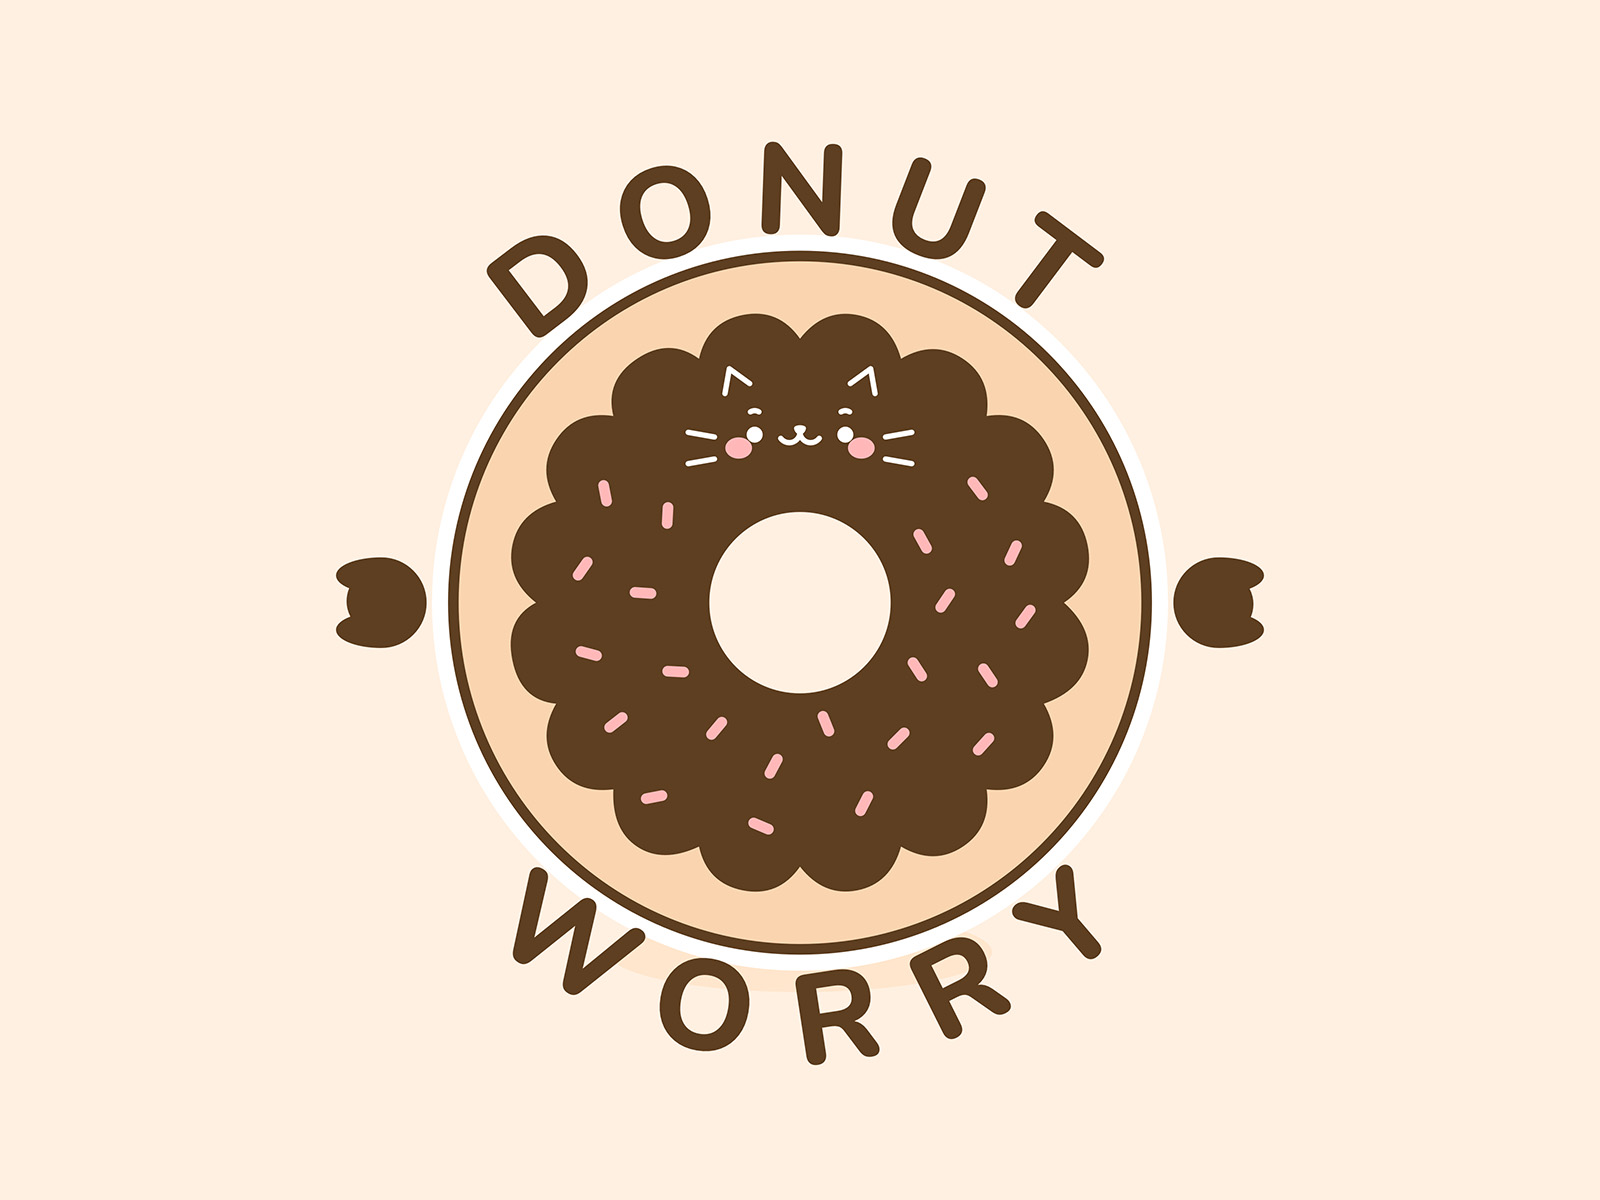 Donut Worry cute art cat pun